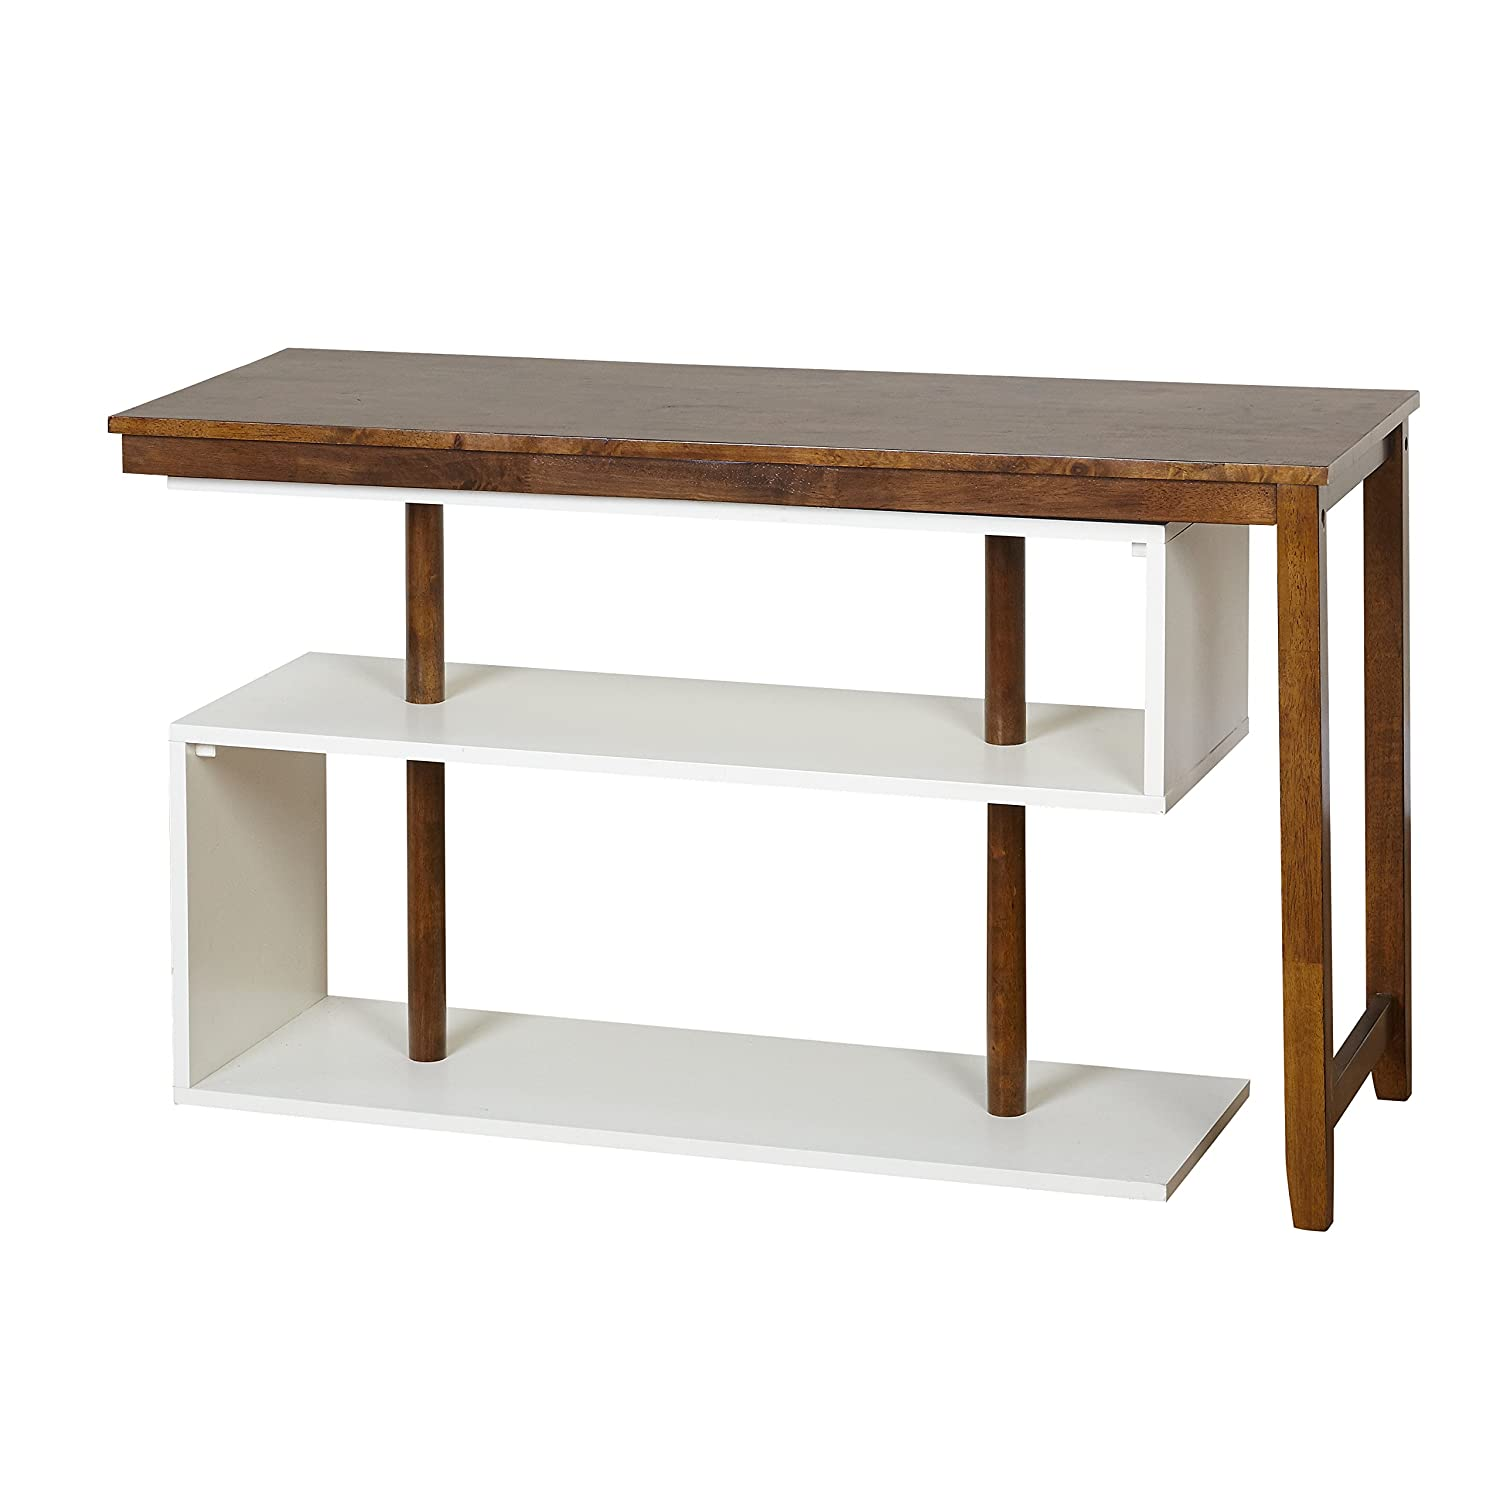 White walnut office furniture Single Amazoncom Target Marketing Systems 35007wal Webester Collection Swing Desk Whitewalnut Kitchen Dining Amazoncom Amazoncom Target Marketing Systems 35007wal Webester Collection